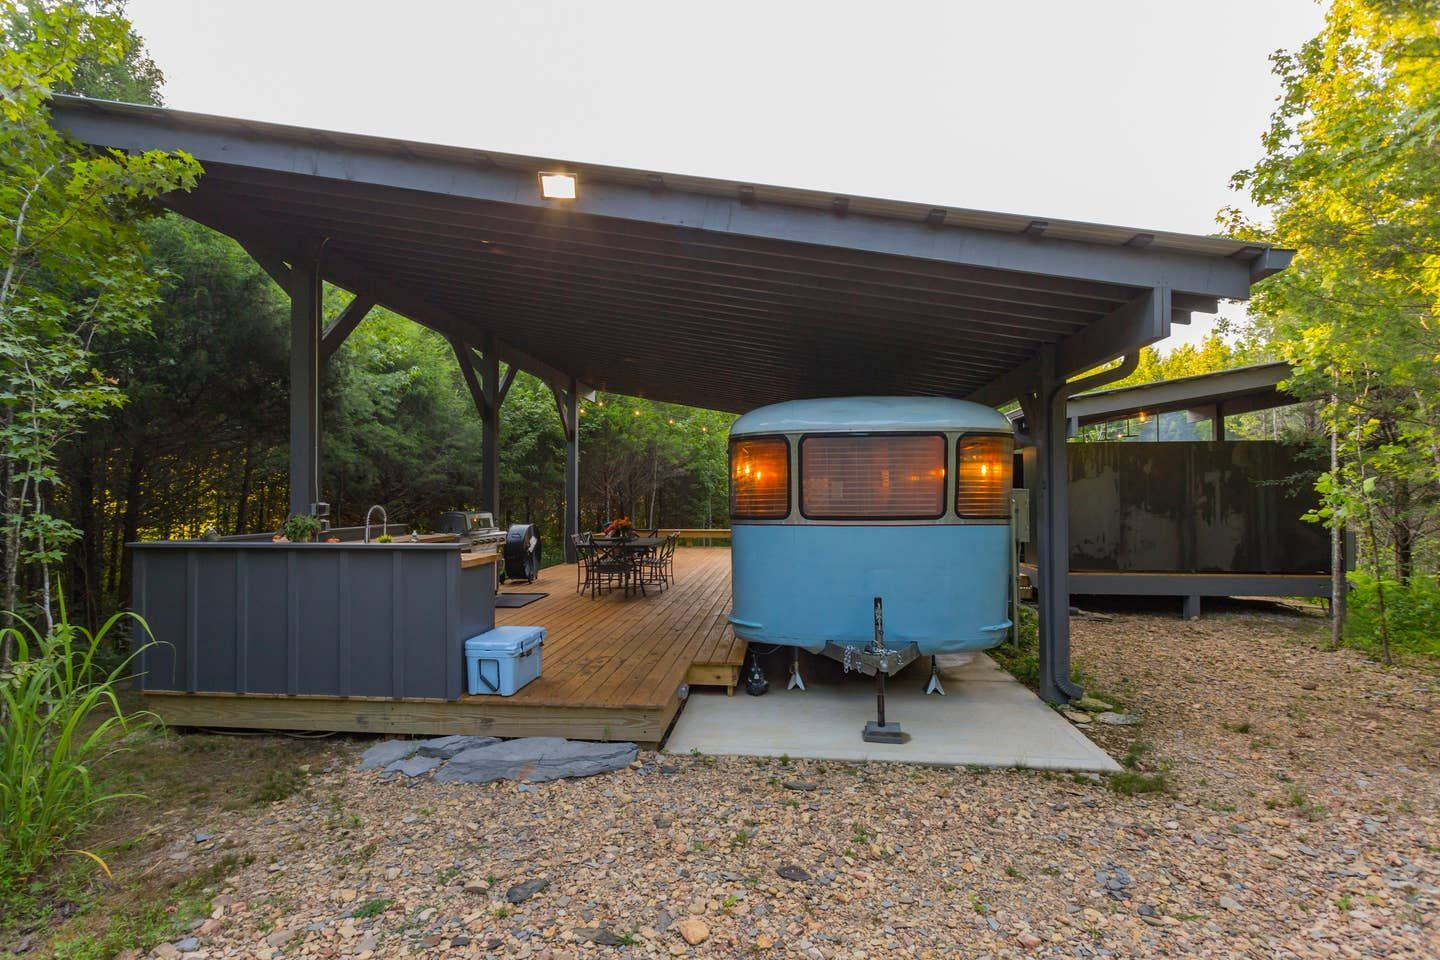 ♥︎ Dreamy ♥︎ Vintage Trailer at No.9 Farms - Campers/RVs for Rent in Ashland City, Tennesse